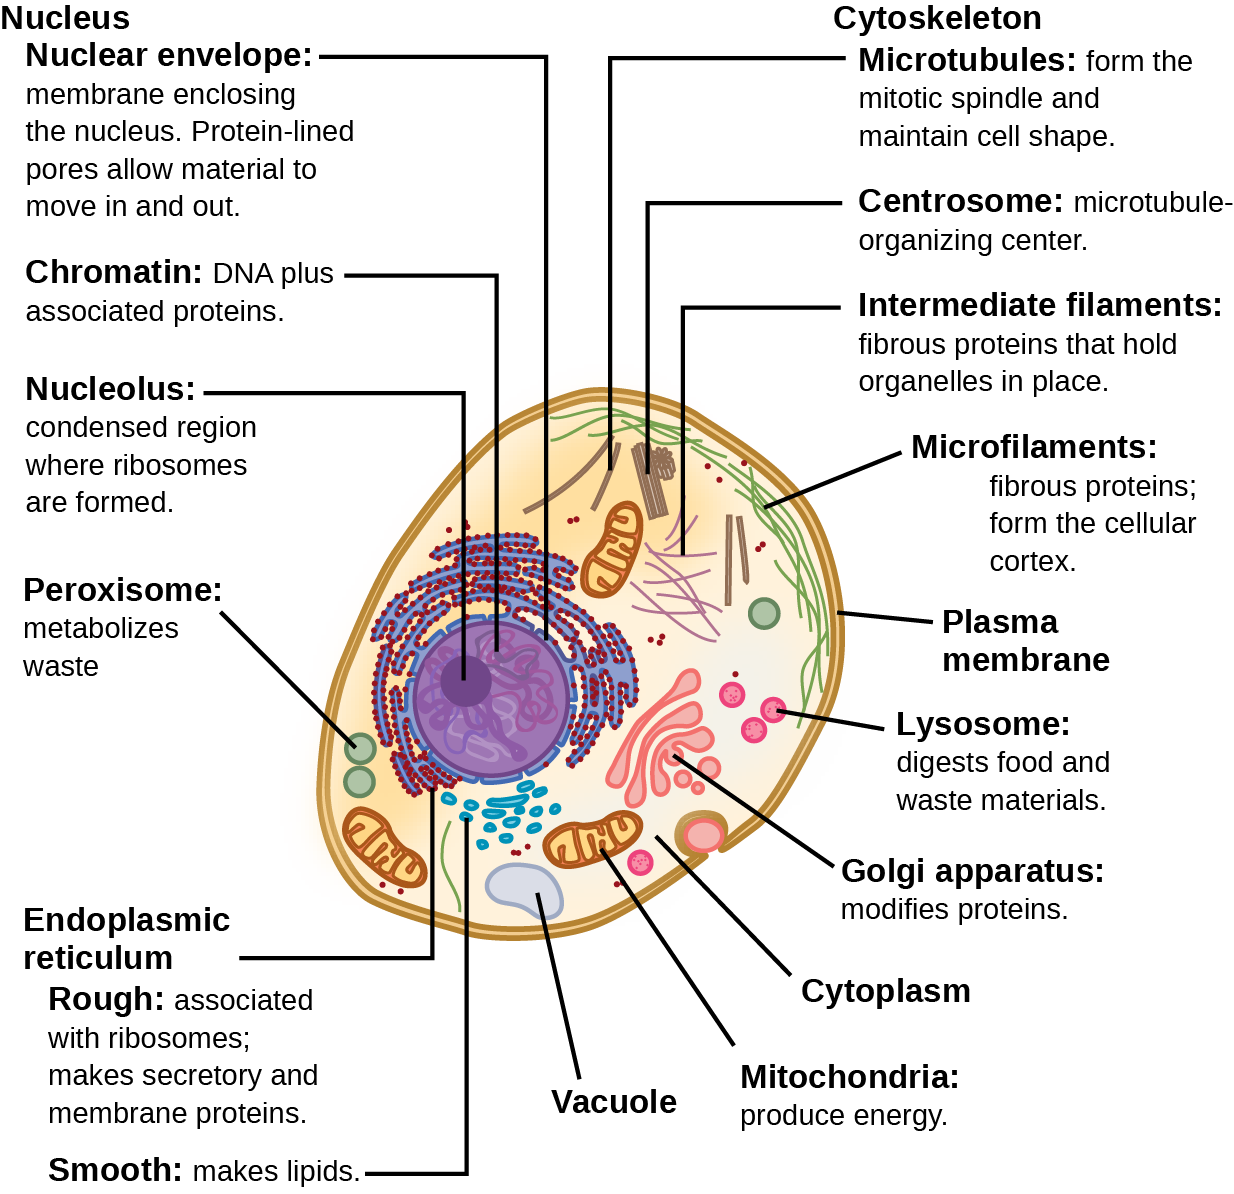 Diagram Eukaryotic Cell